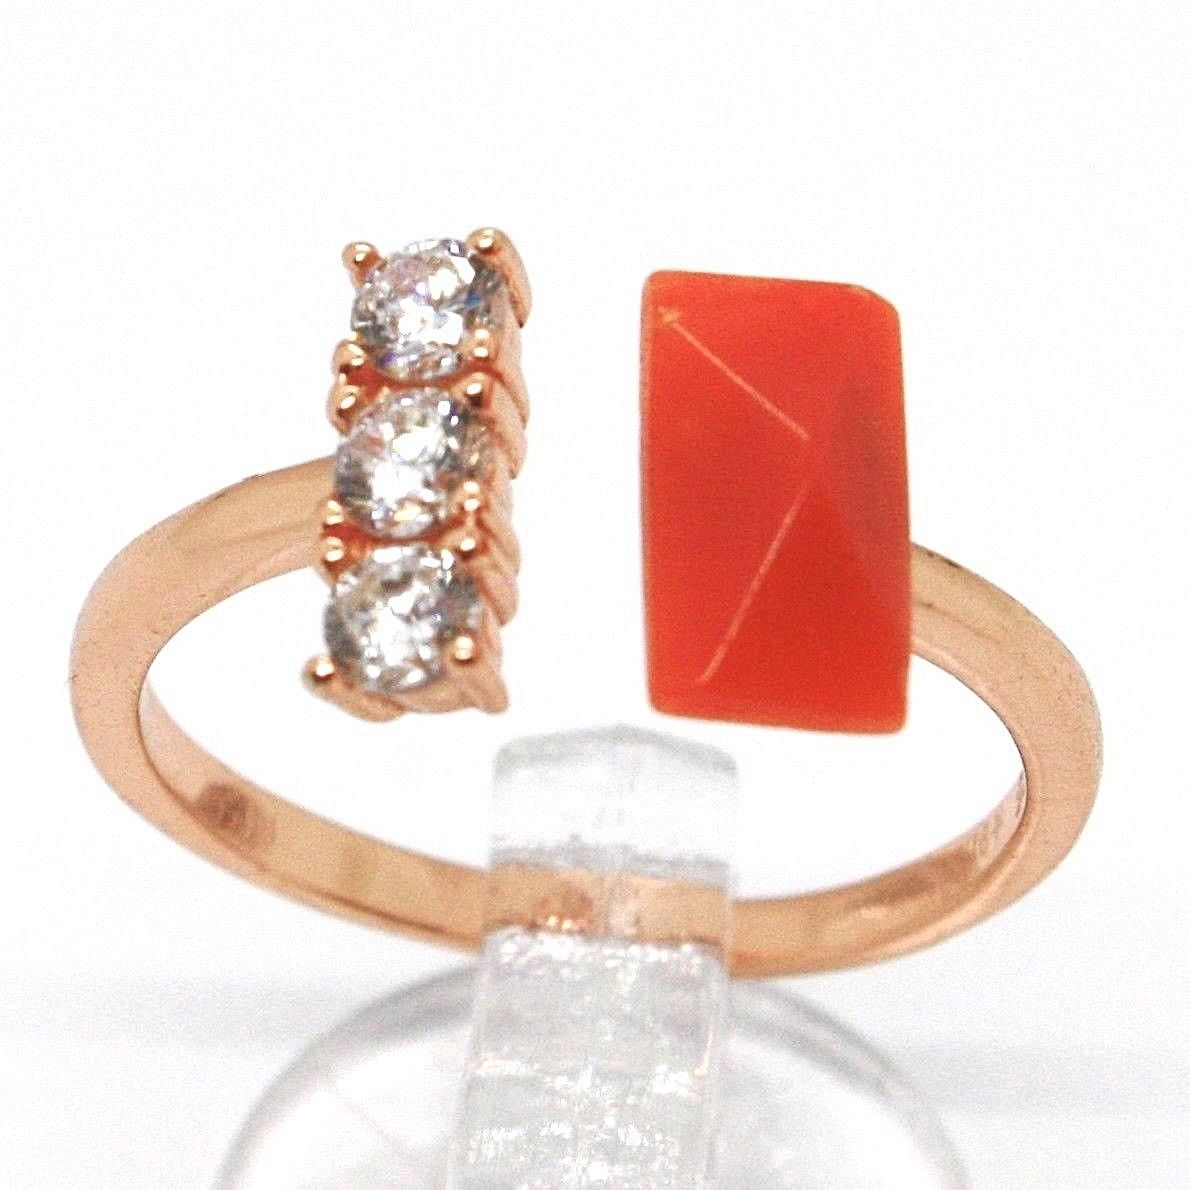 925 Silver Ring, Pink, Trilogy, Coral Red Rectangular Made in Italy